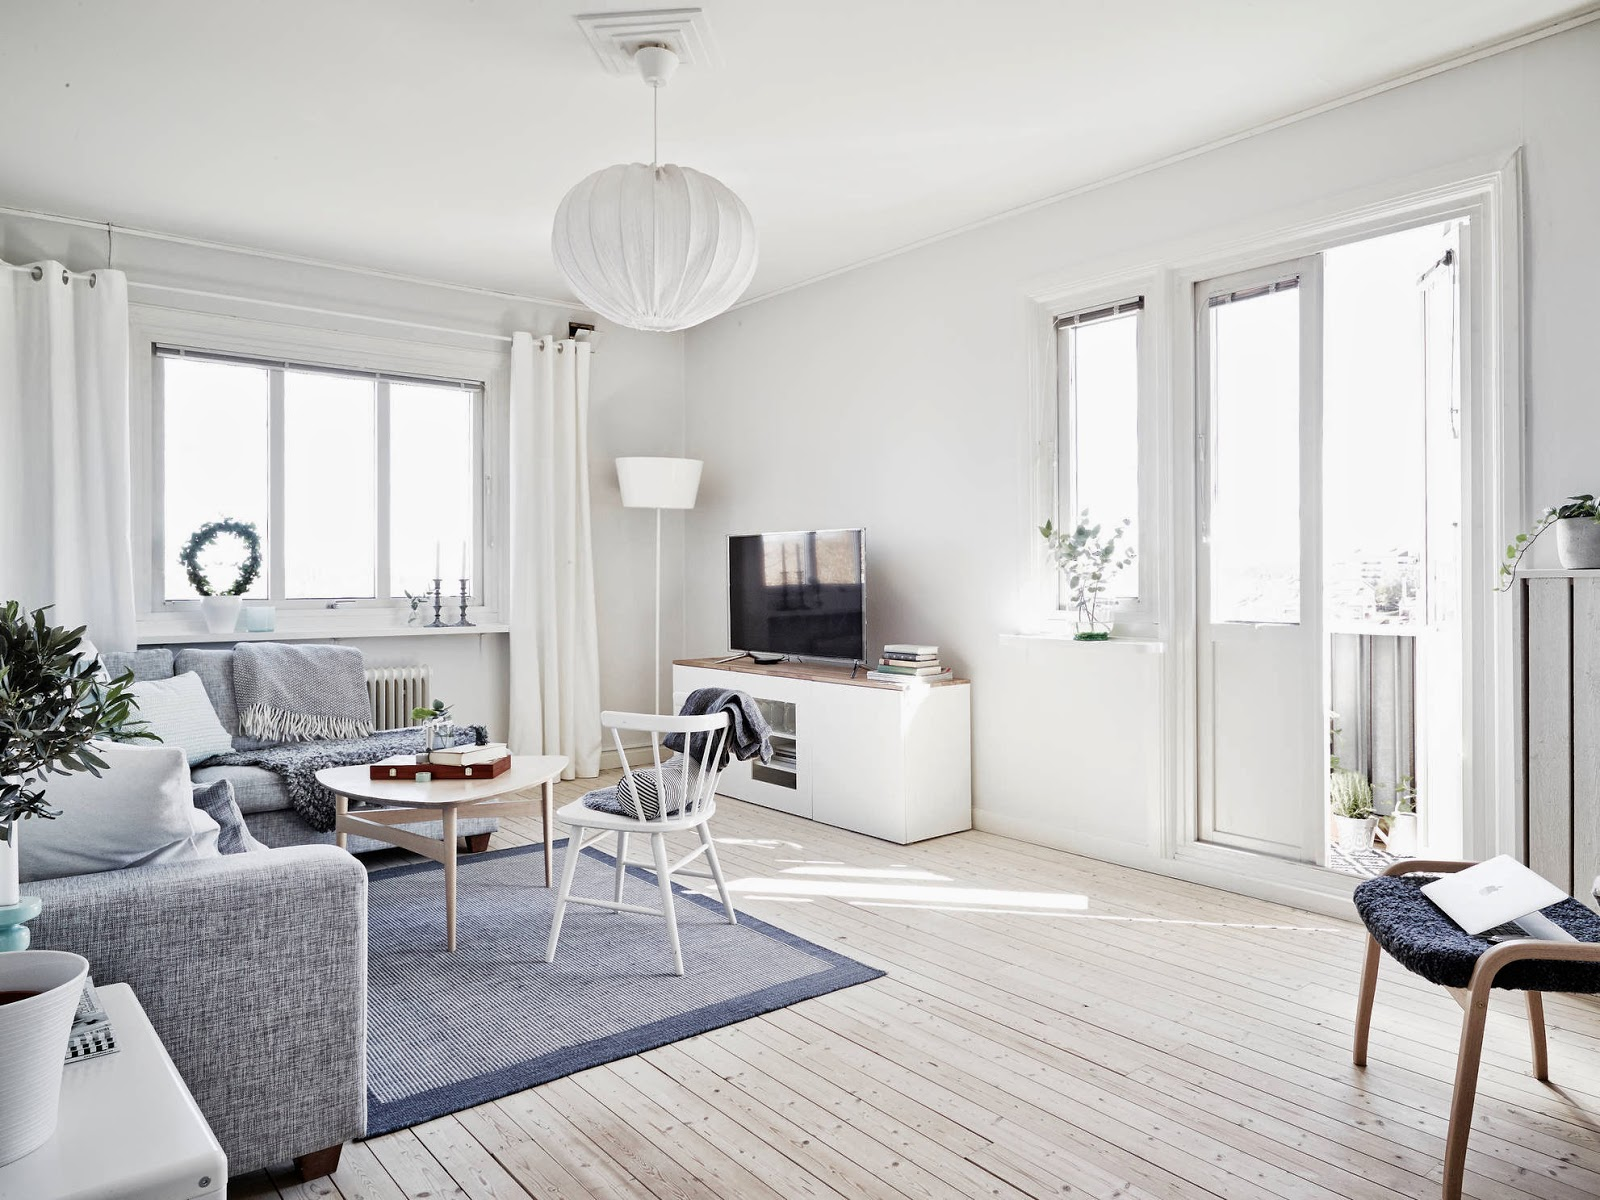 Simple apartment layout: simple ways to decorate a small apartment ...